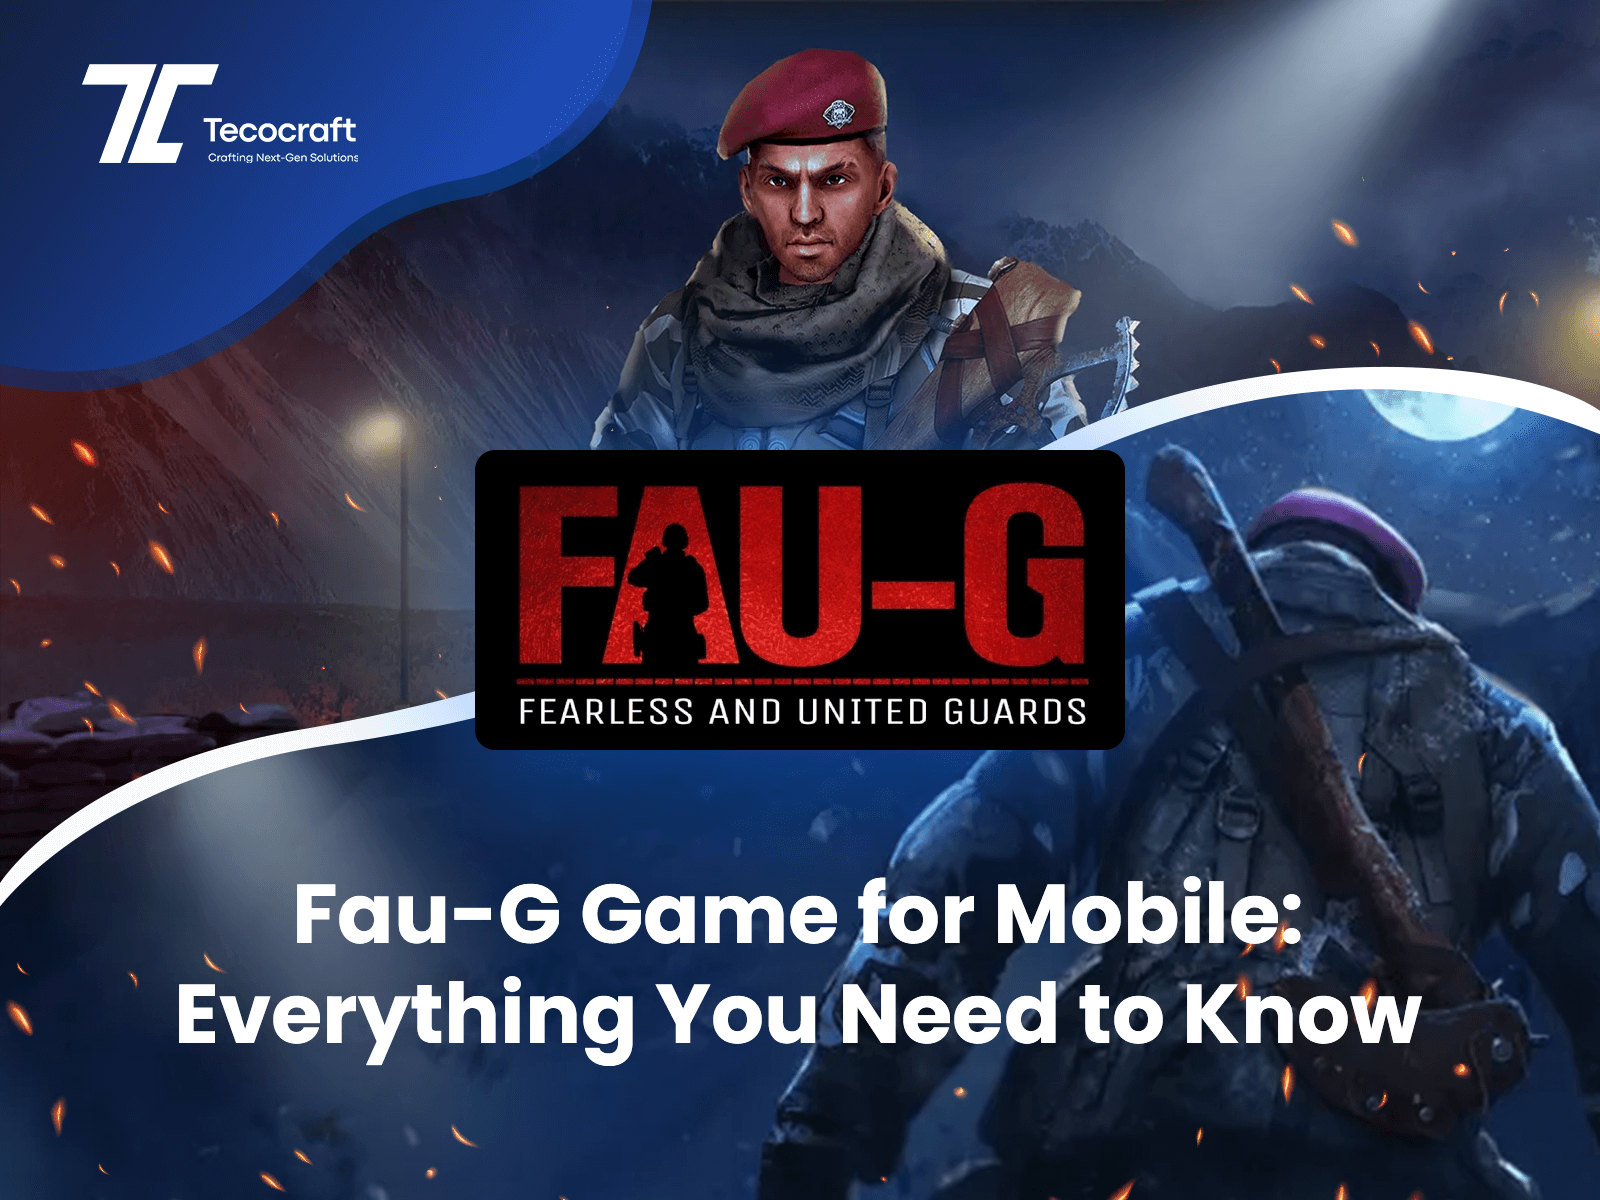 learn everything about the new game Fau-G,